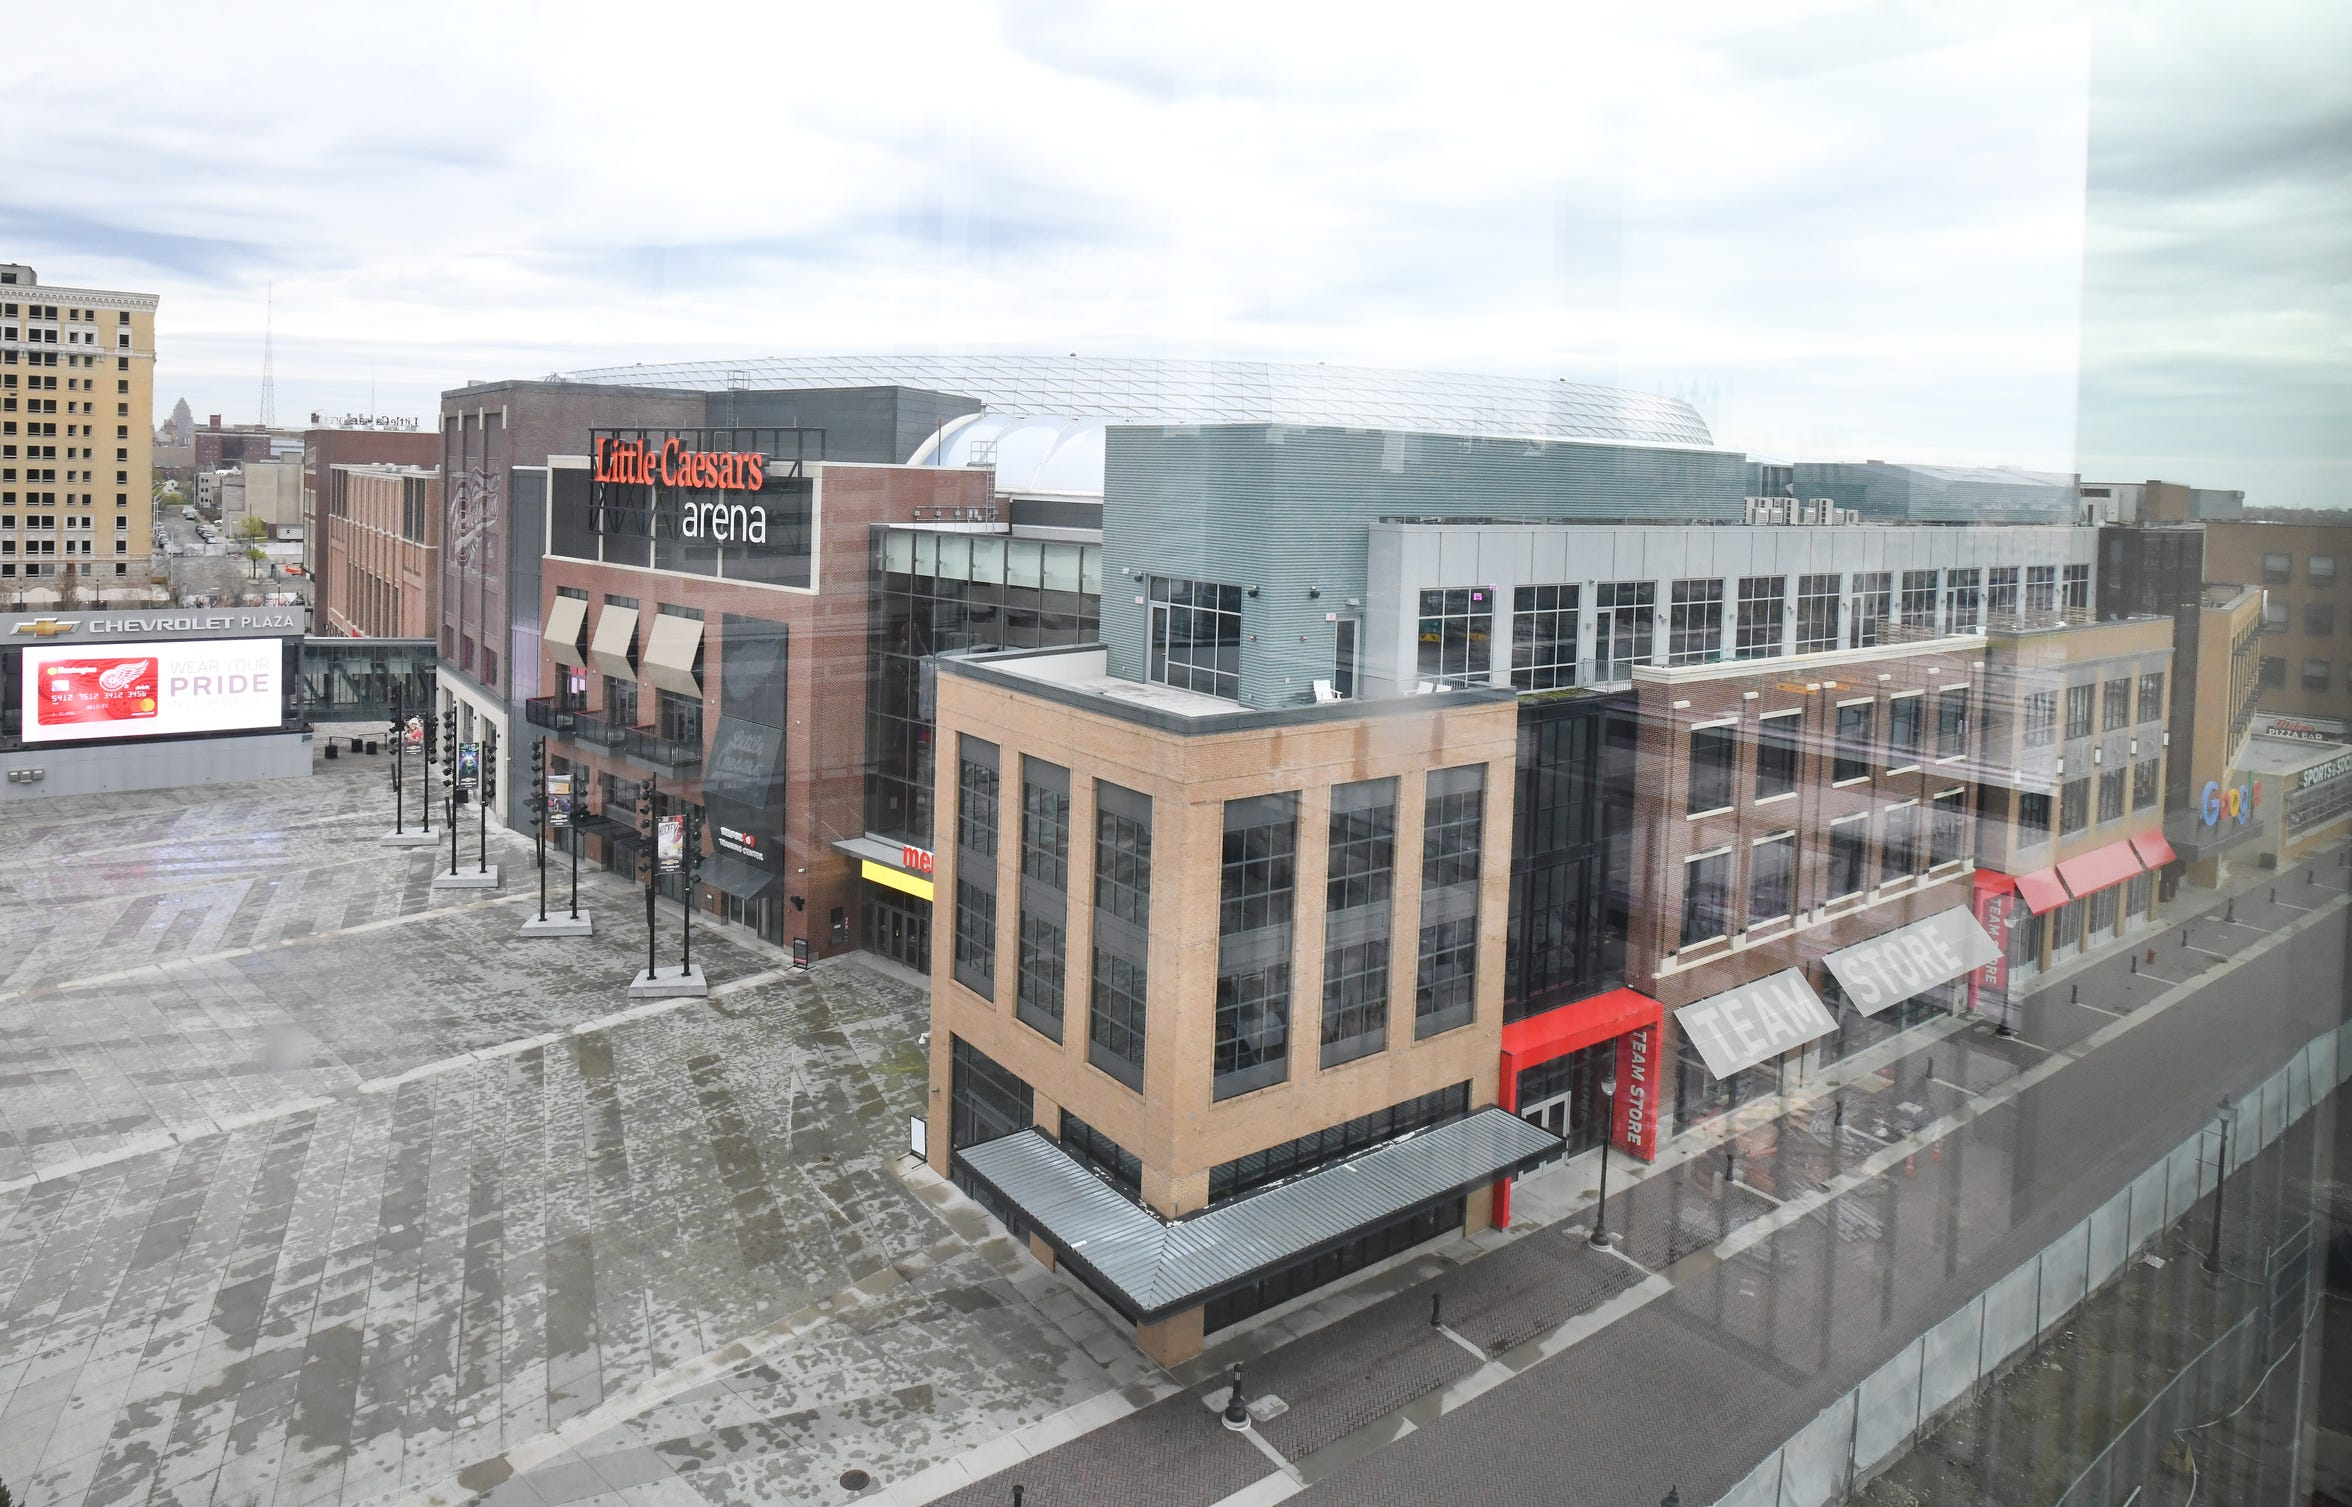 Shot of Little Caesars Arena from parking garage along Henry Street.